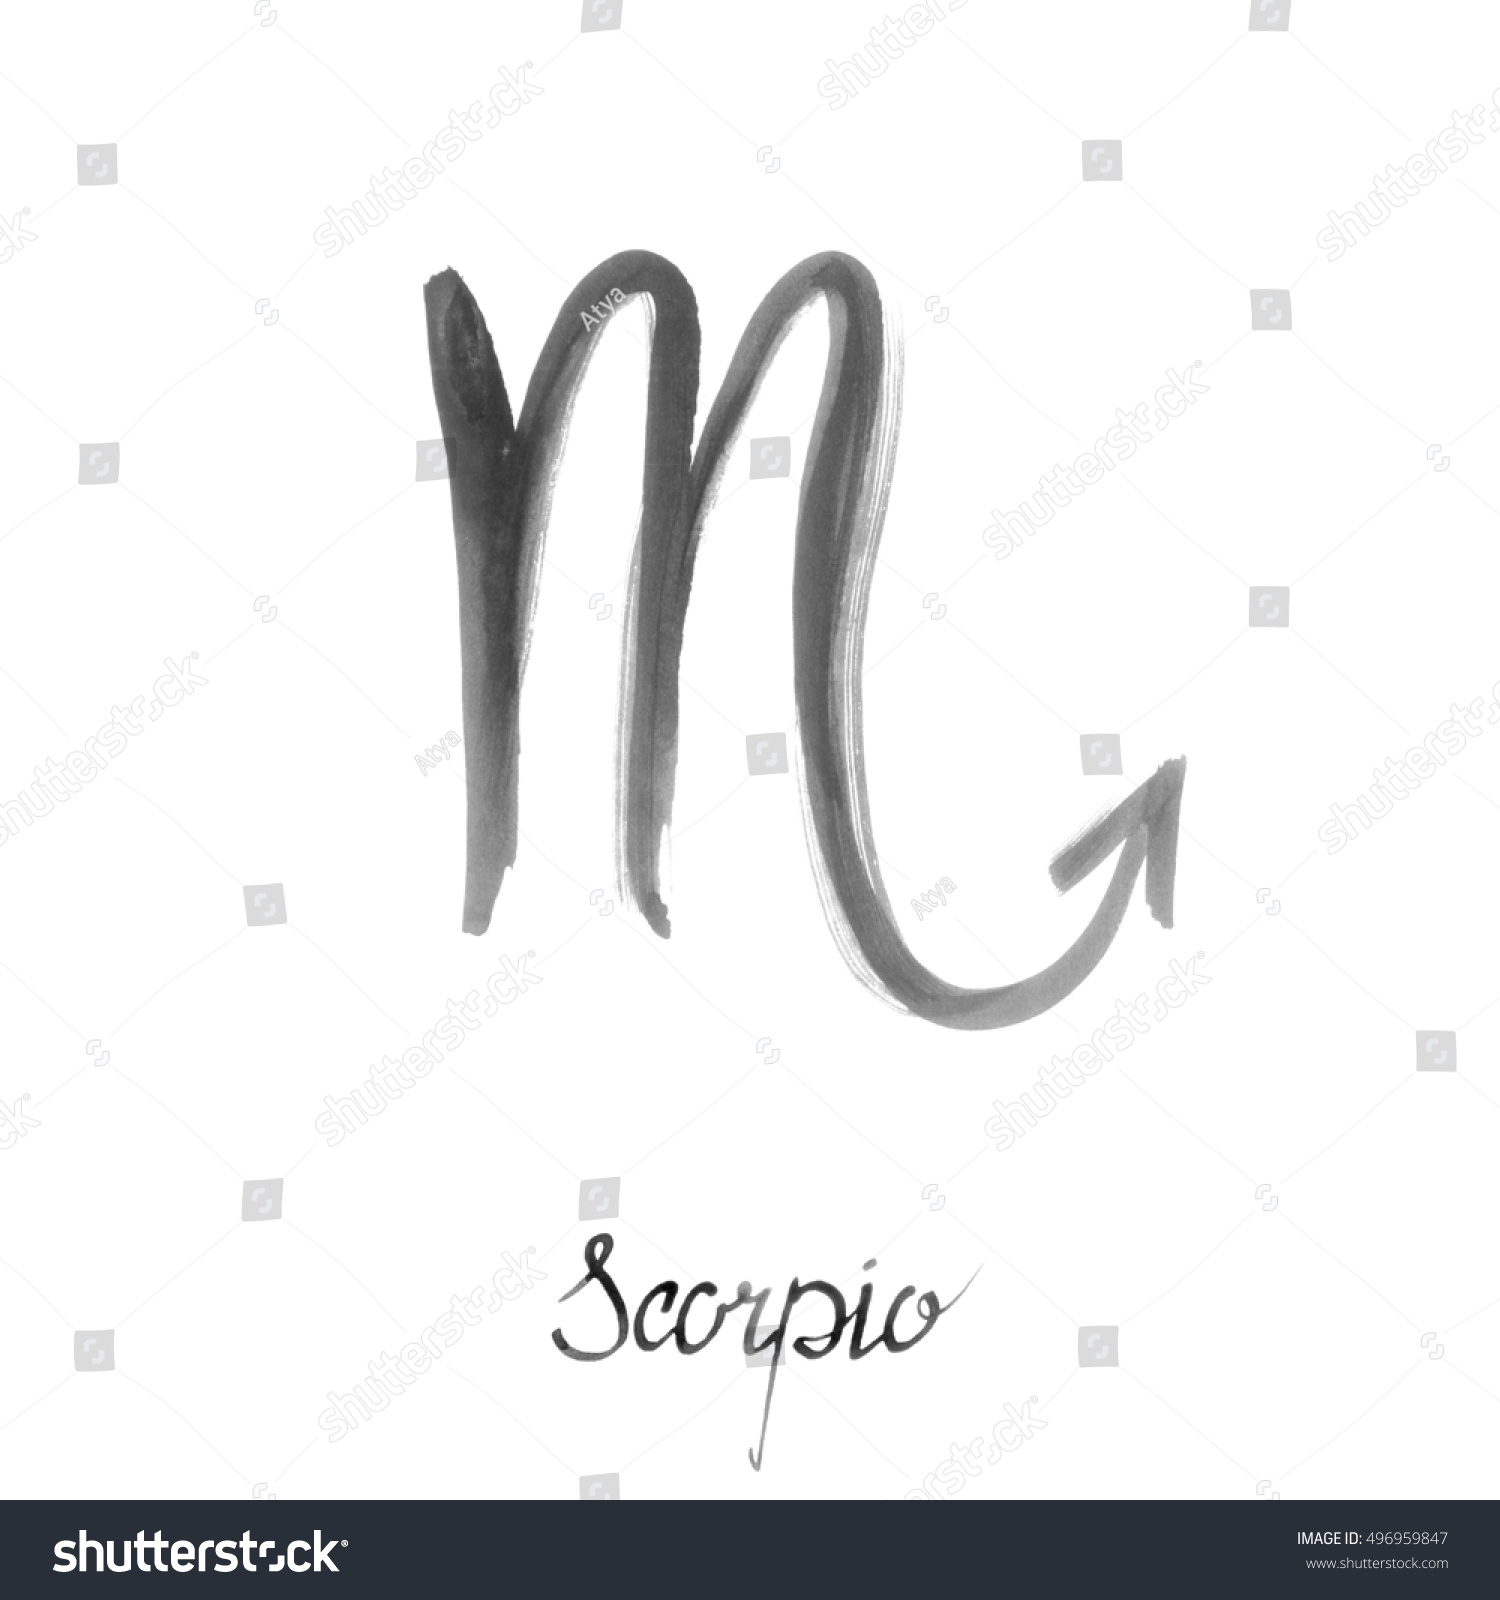 Abstract illustration zodiac sign scorpio zodiac stock abstract illustration of the zodiac sign scorpio zodiac icon astrology buycottarizona